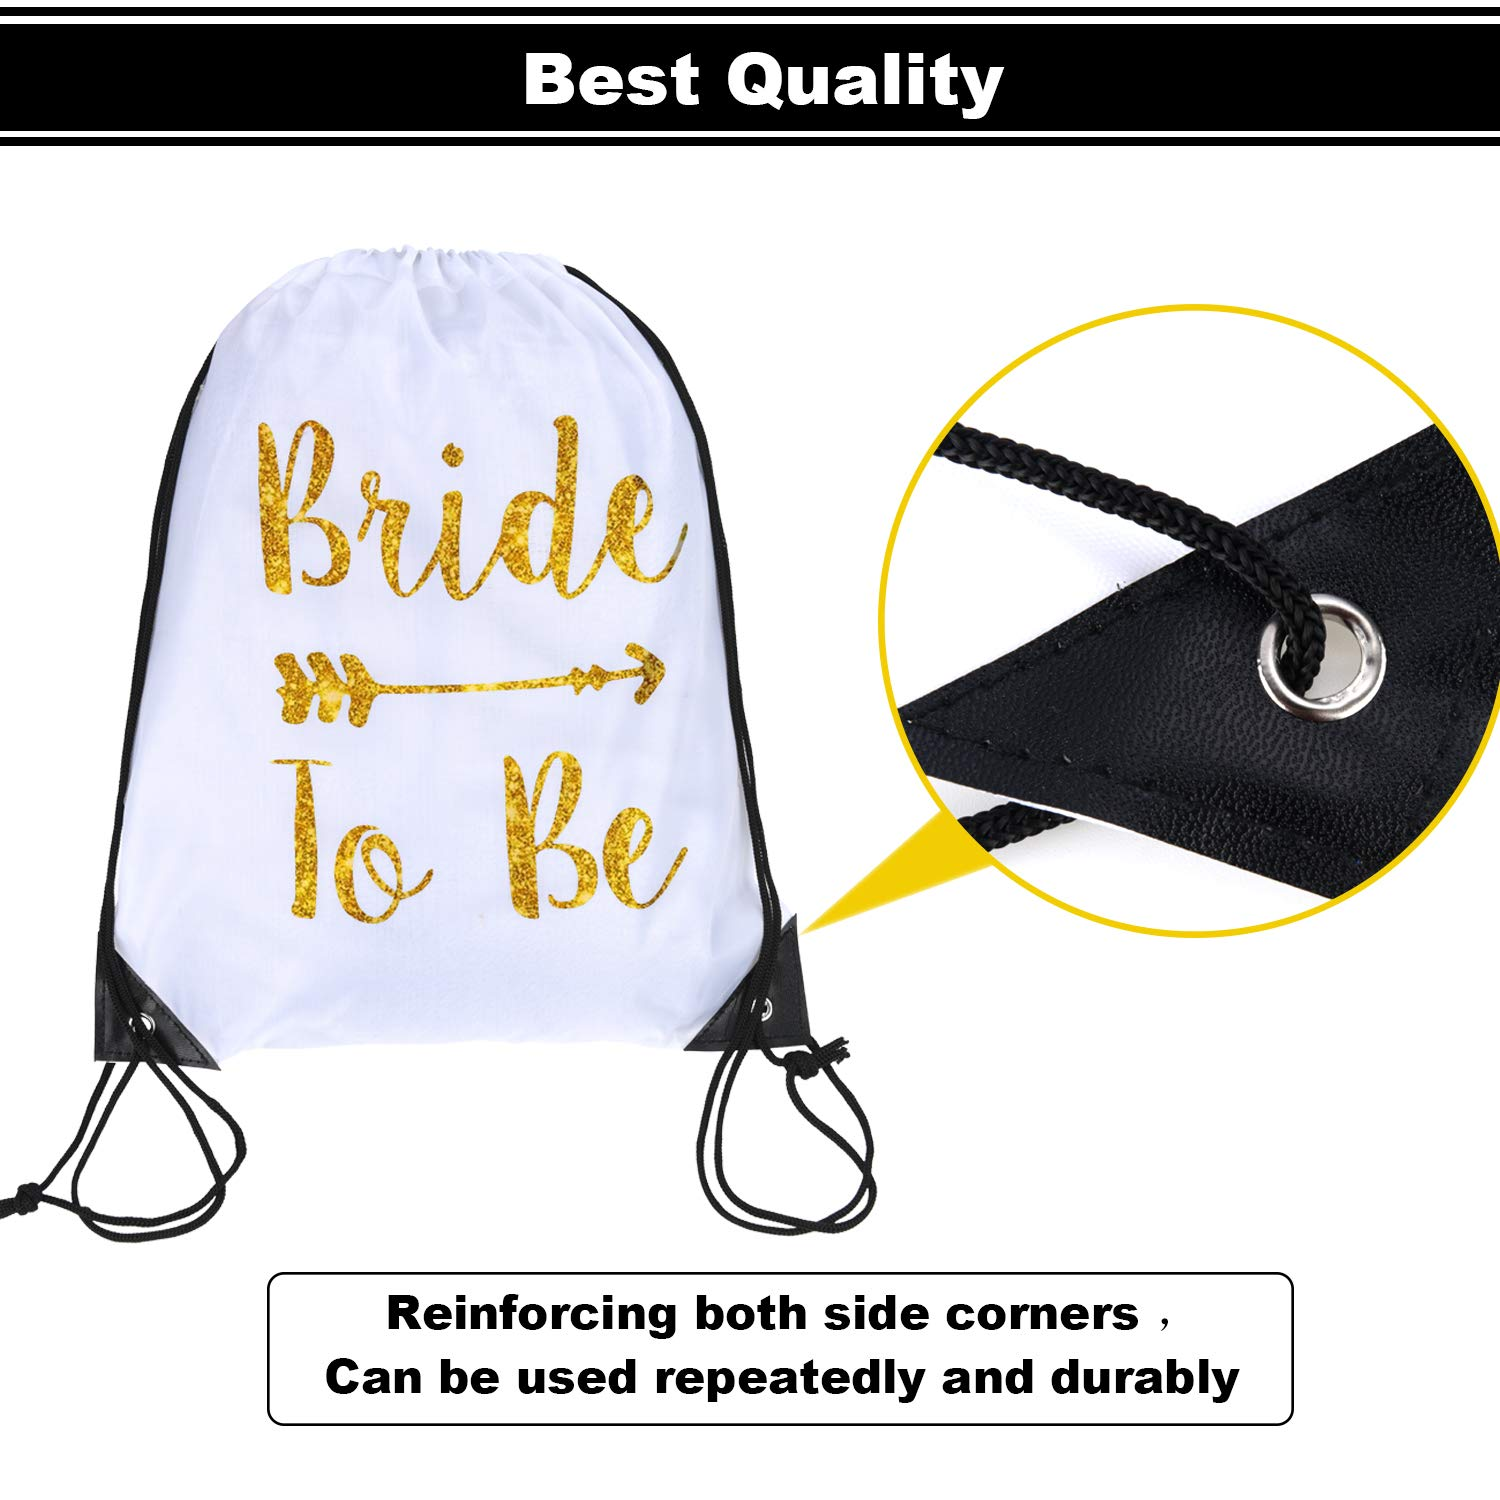 12 Pieces Bride and Bride Tribe Drawstring Bags Wedding Drawstring Gift Bag Bridal Party Favor Bags for Bridesmaids Bridal Party Bridal Shower, 16.5 x 13.4 inch (Black) by Maitys (Image #4)